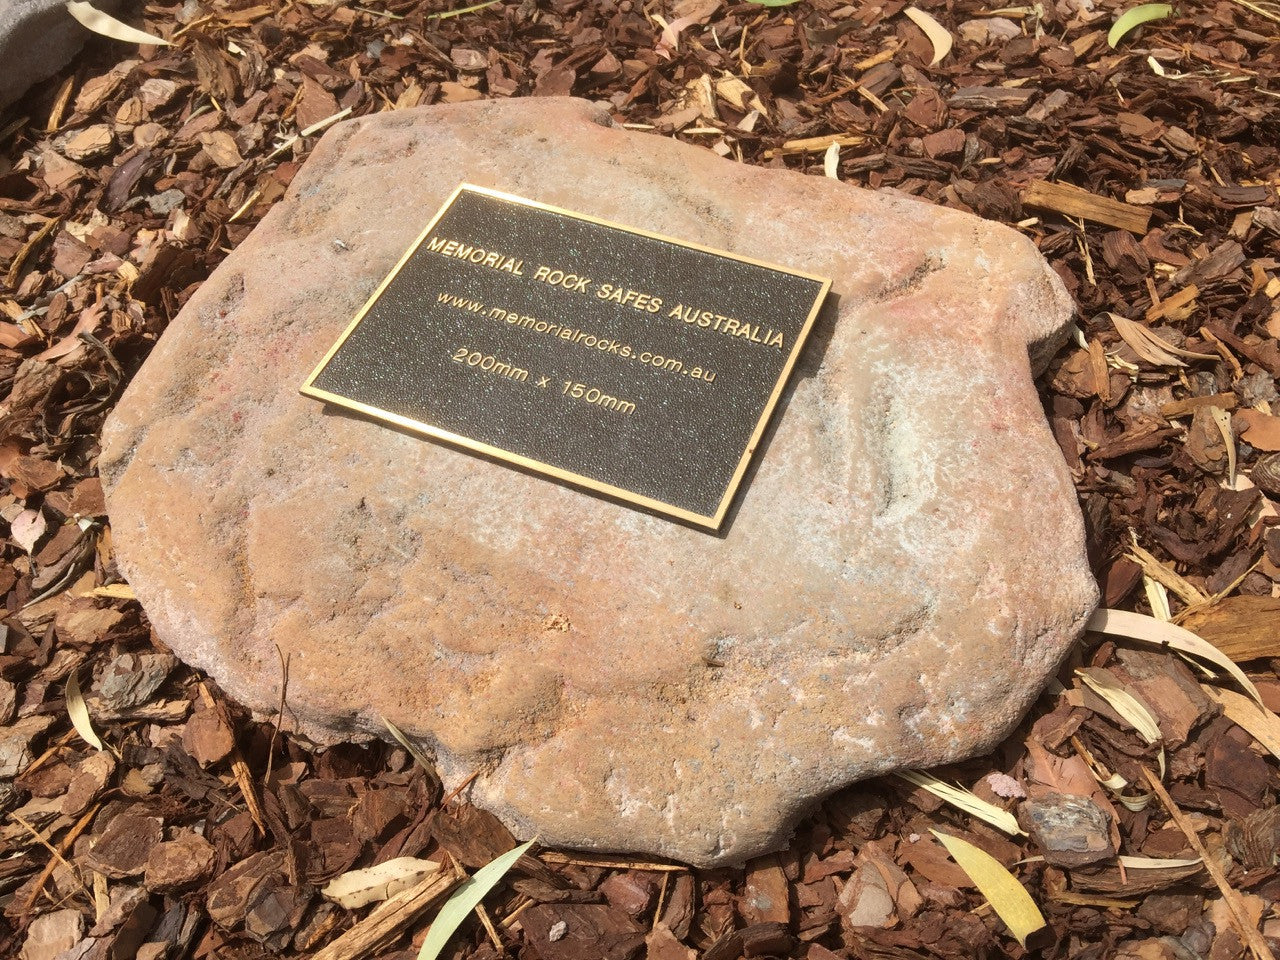 Paver - Memorial Paver Stone 589 (Not an Urn) including 200mm x 150mm Bronze Plaque